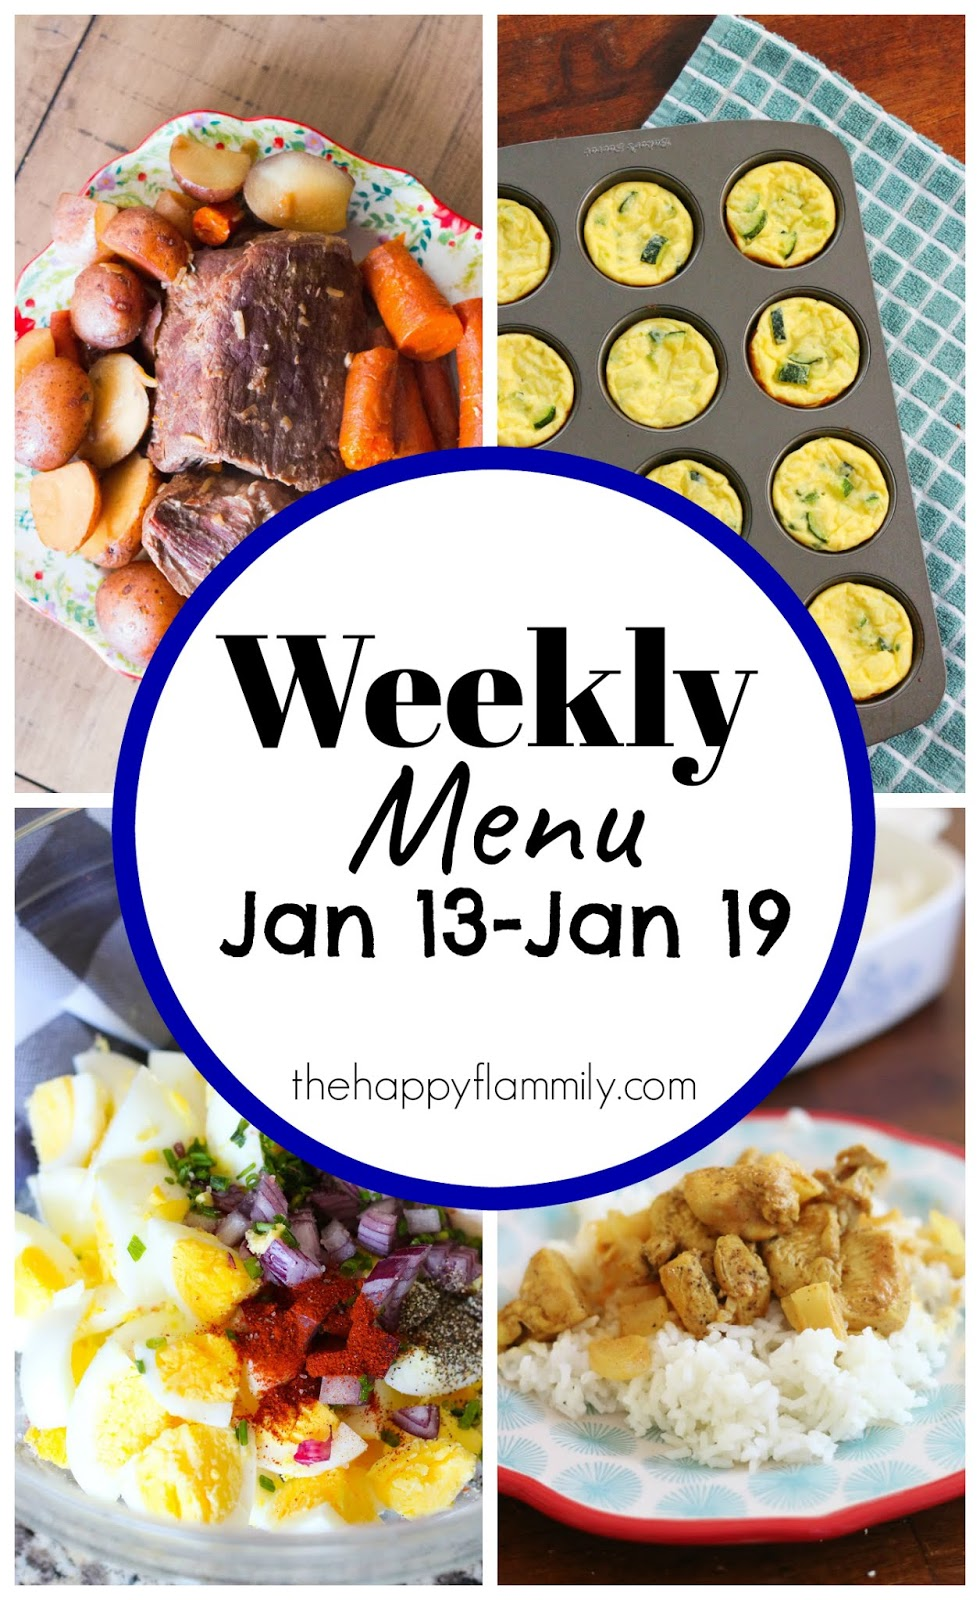 Health menu plan for families. Healthy family menu plan. Weekly menu plan for families. Free weekly menu plan for families. Family friendly menu plan. #family #FamilyMeals #KidMeals #kidFriendly #food #HealthyFood